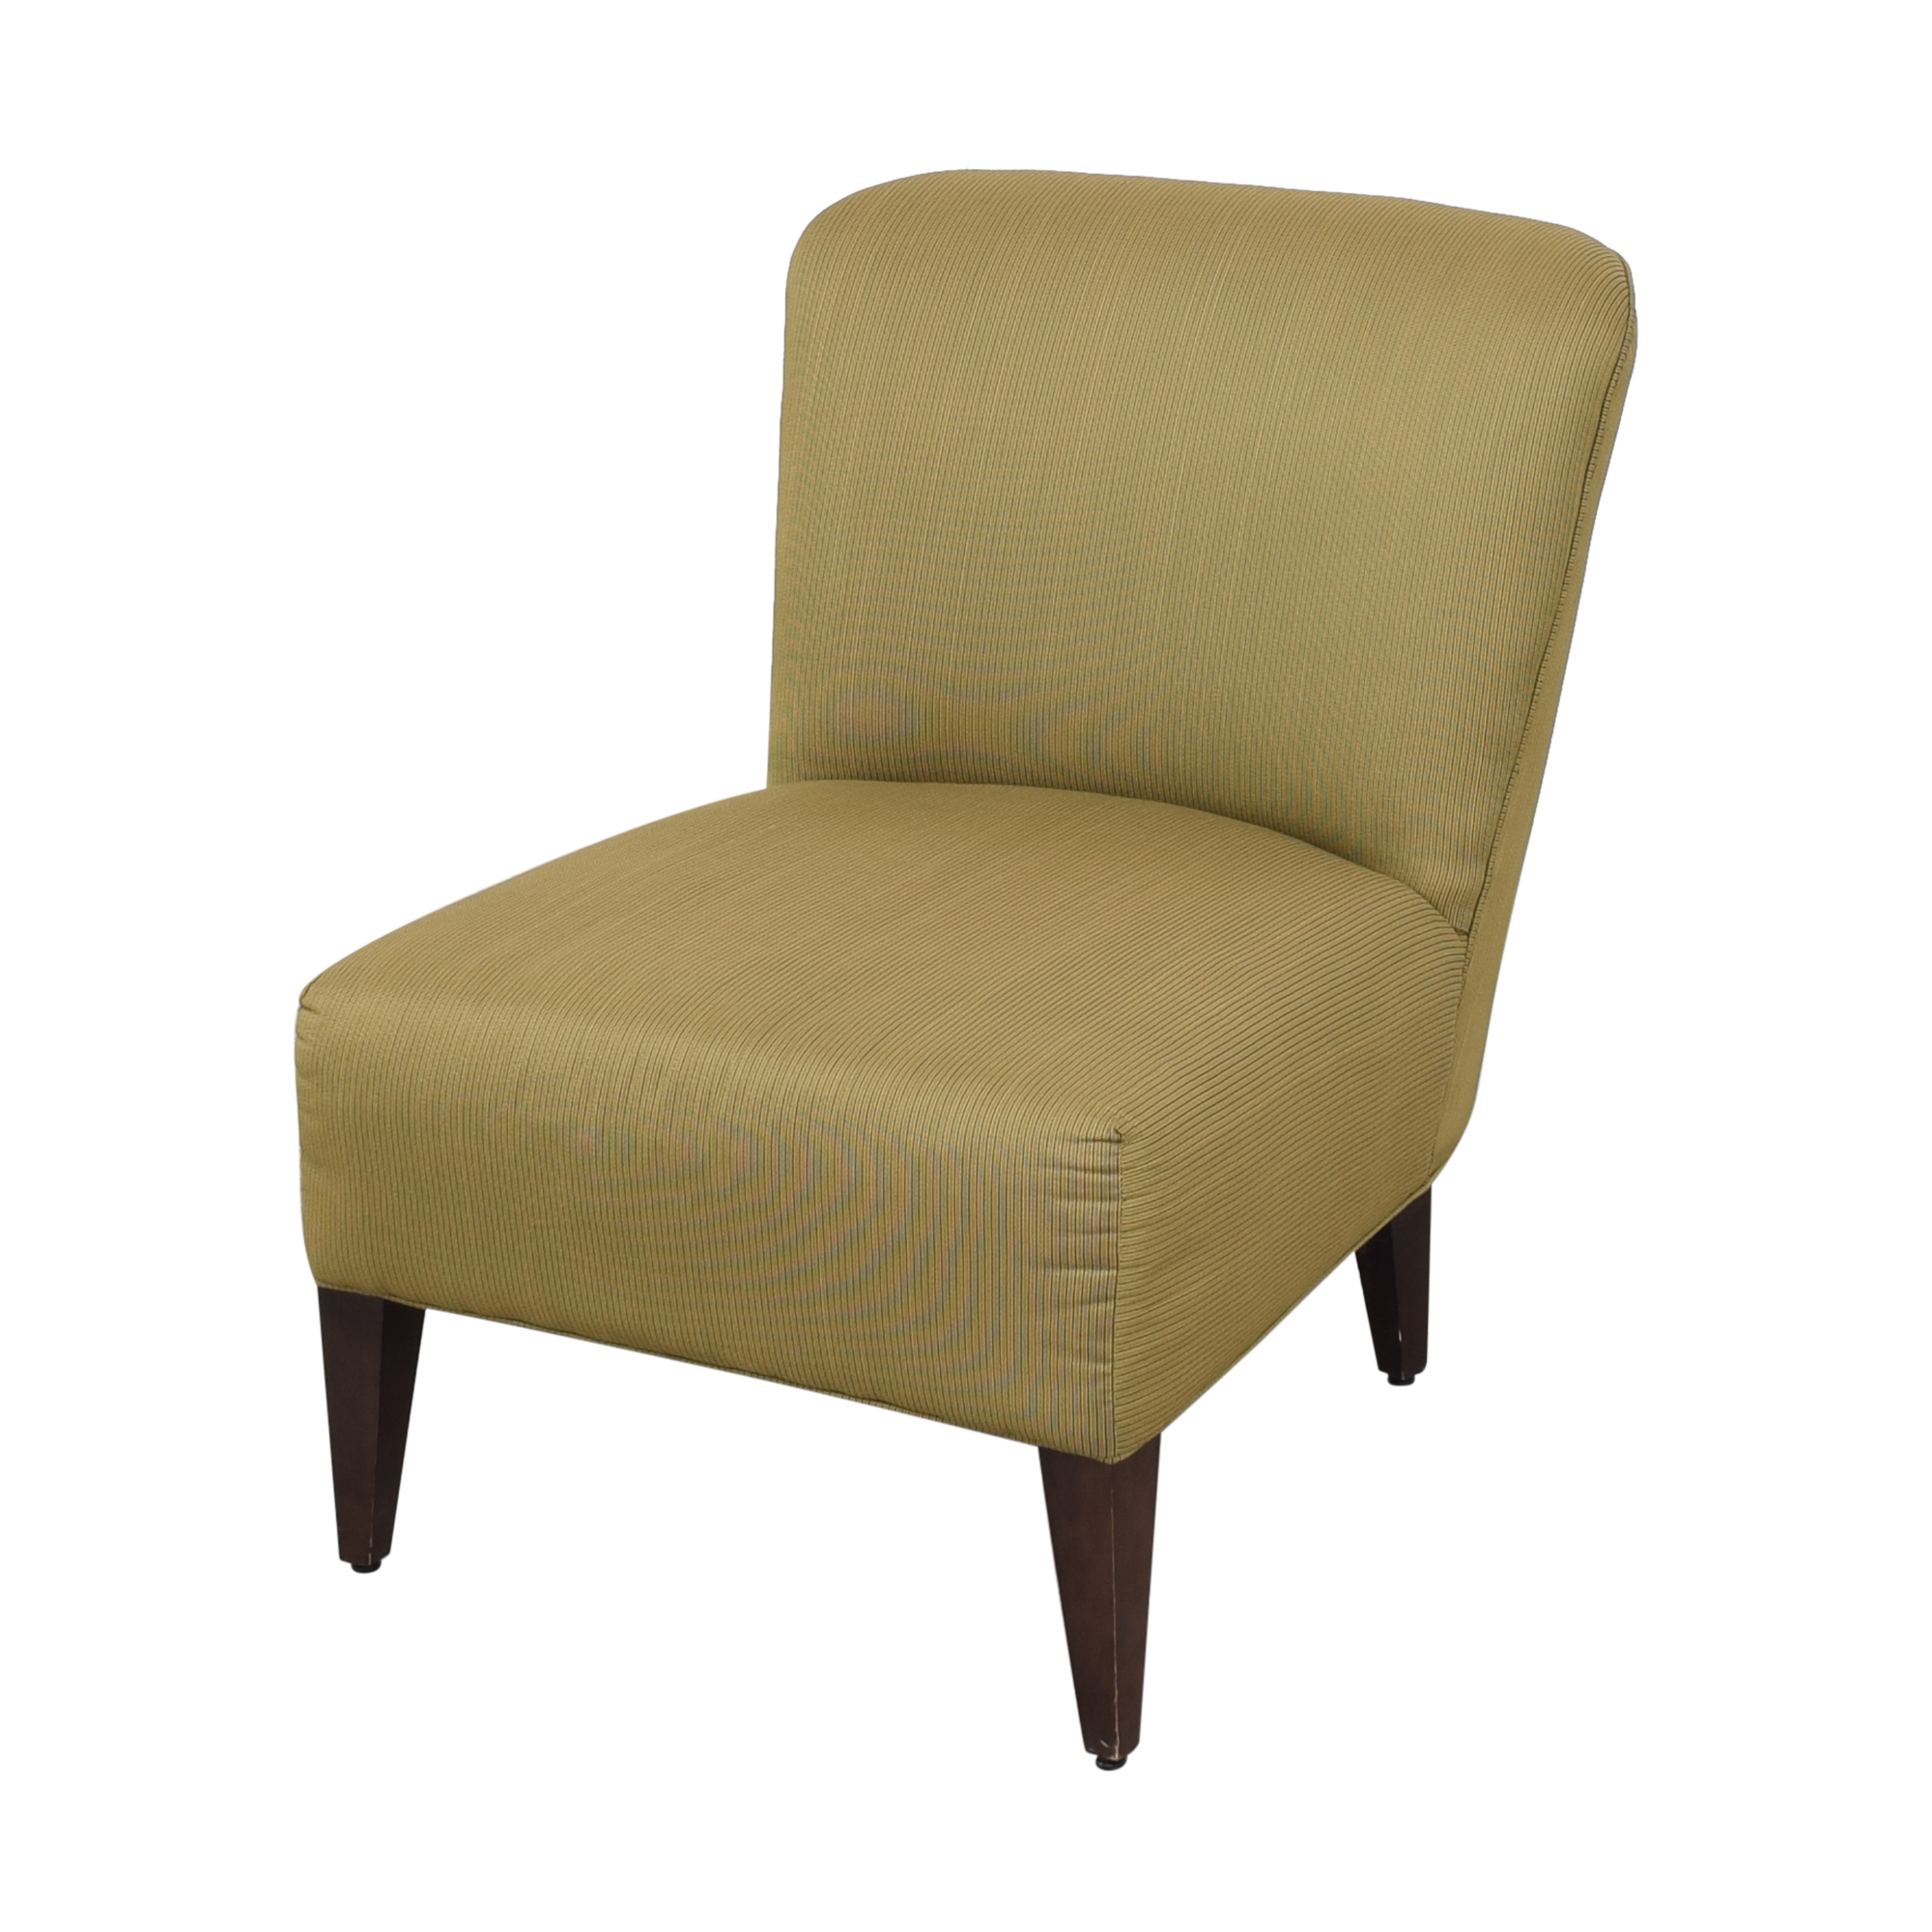 Restoration Hardware Restoration Hardware Slipper Style Accent Chair nj